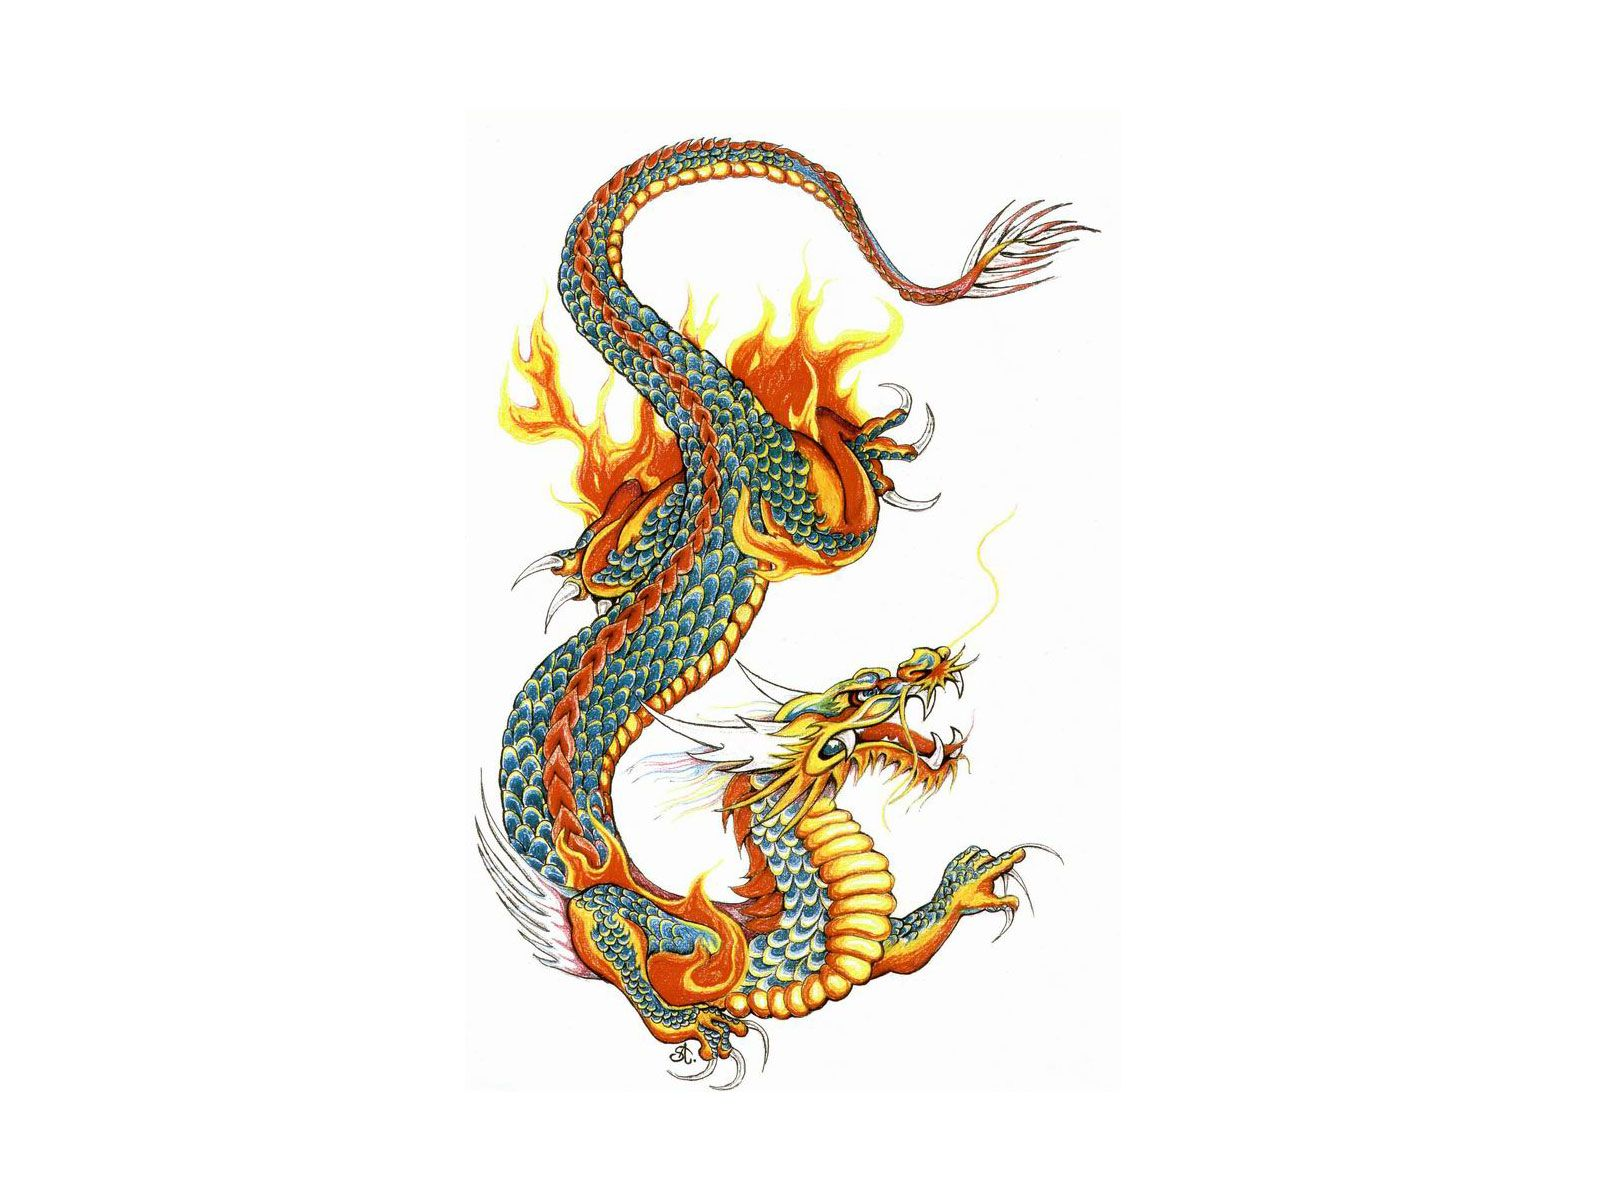 Japanese Dragon Tattoo Design Dragon Tattoo Pictures Free Clipart Best Asian Dragon Tattoo Dragon Illustration Asian Dragon